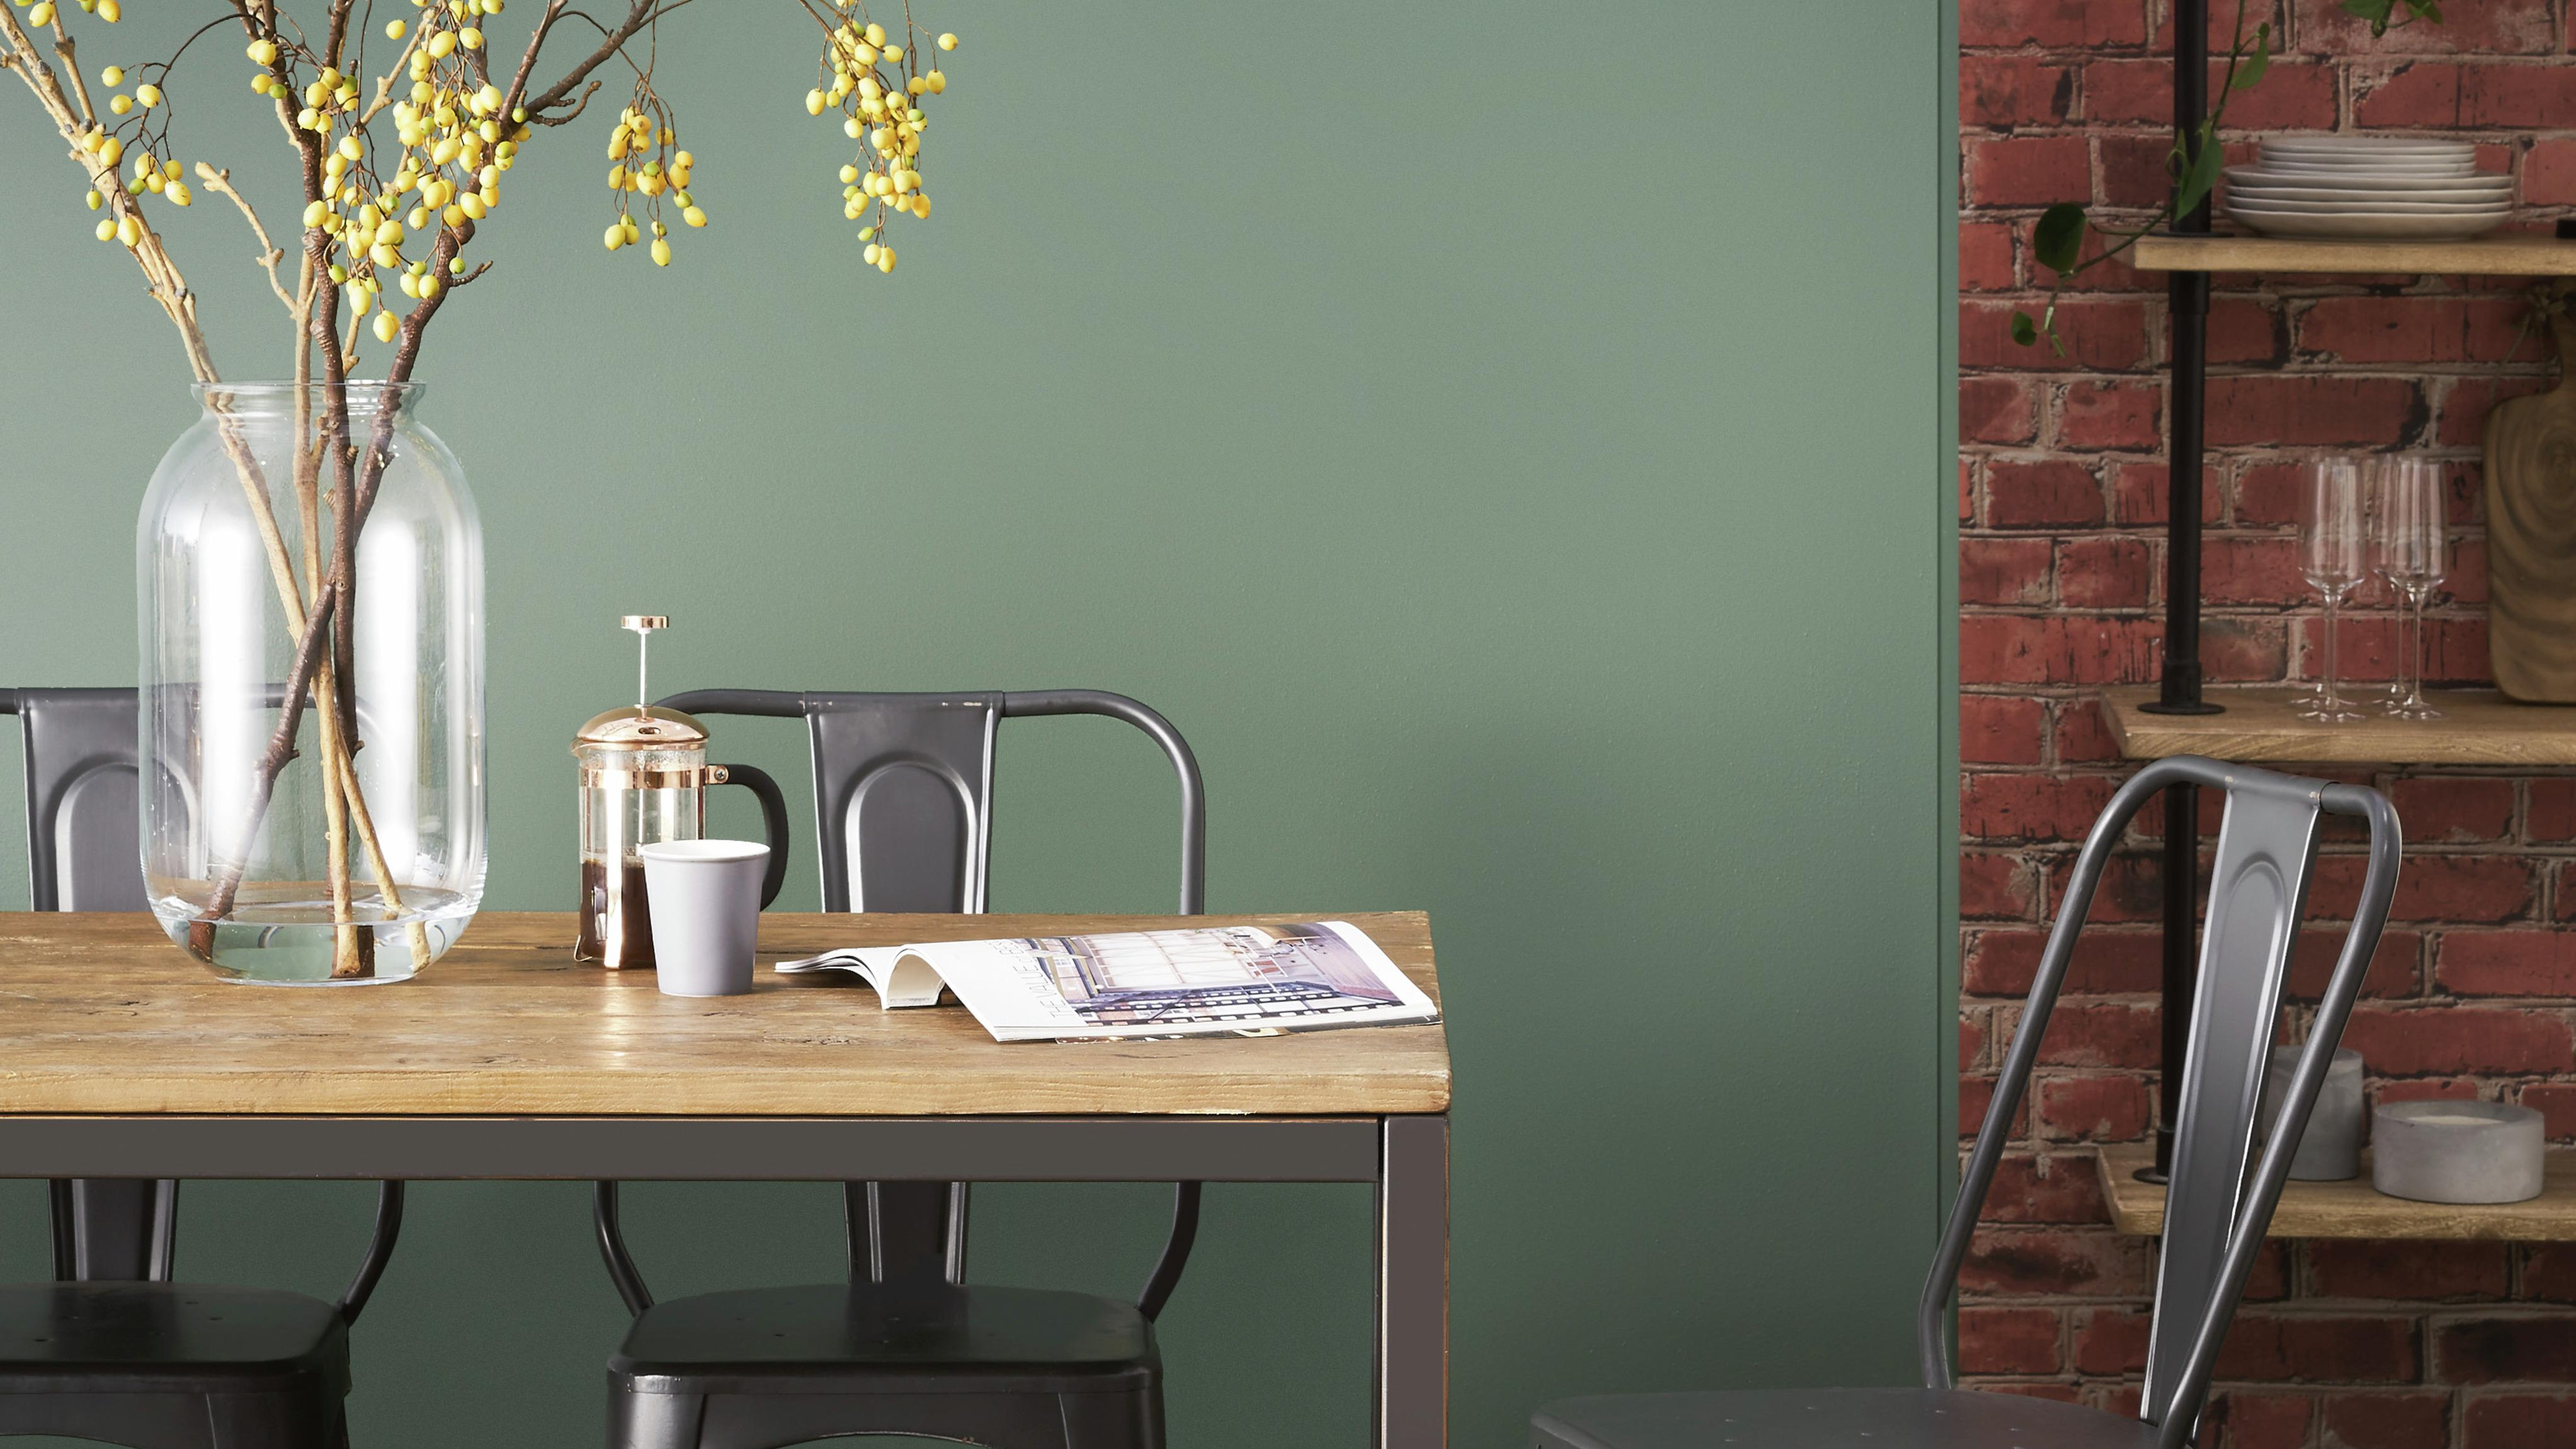 Dining room with green painted wall.